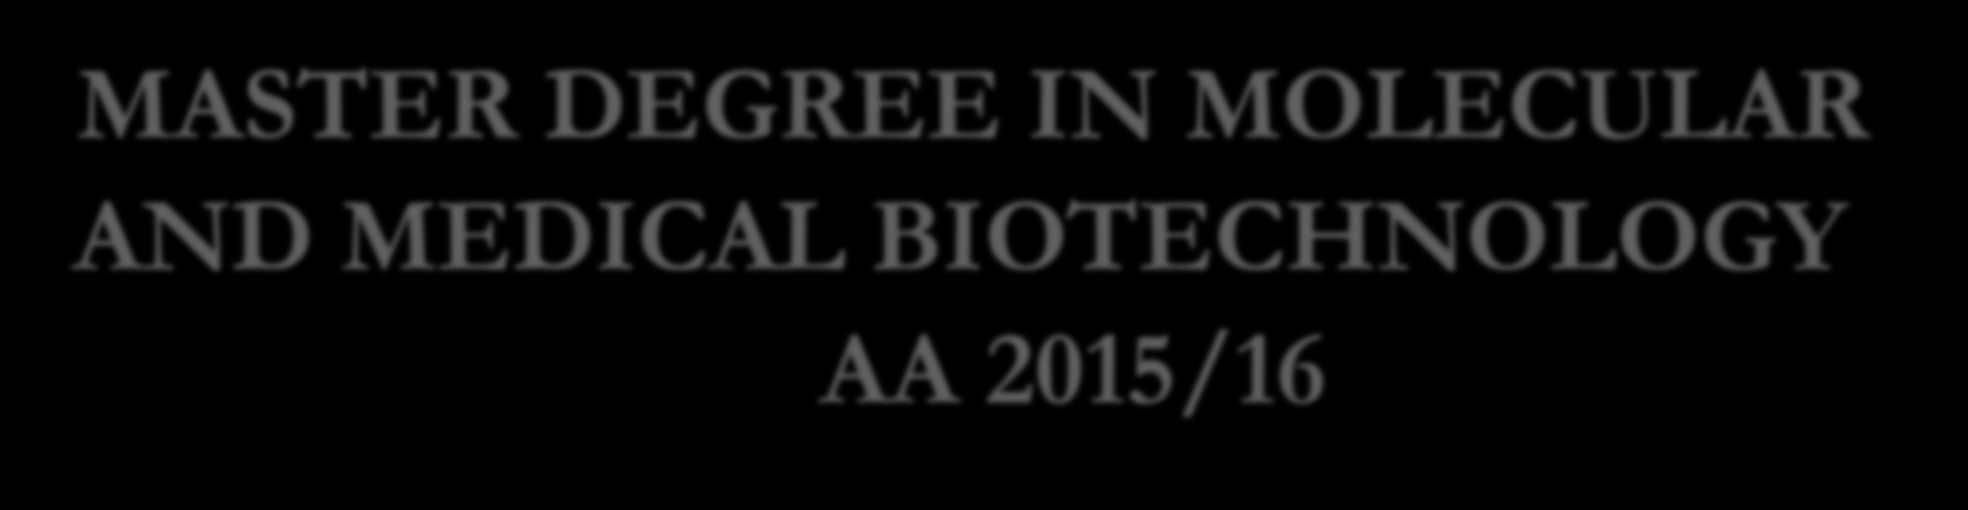 MASTER DEGREE IN MOLECULAR AND MEDICAL BIOTECHNOLOGY AA 2015/16